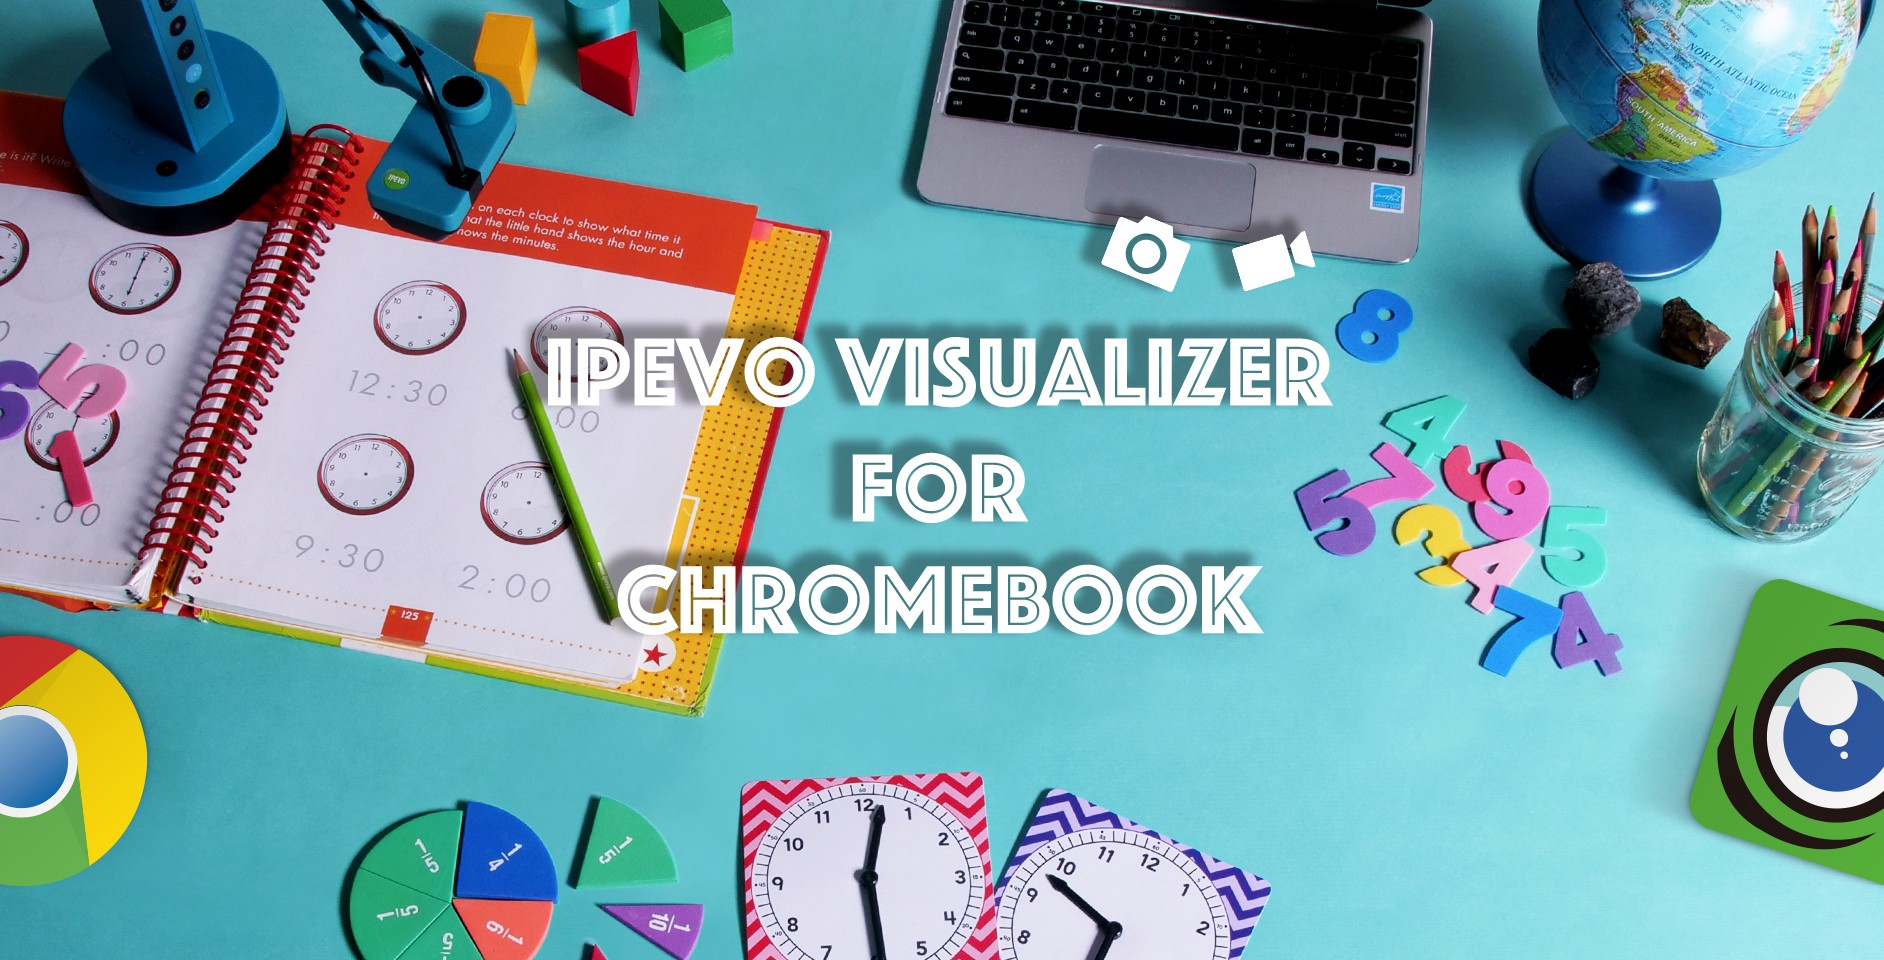 IPEVO Visualizer for Chromebook — Taking snapshots and recording videos